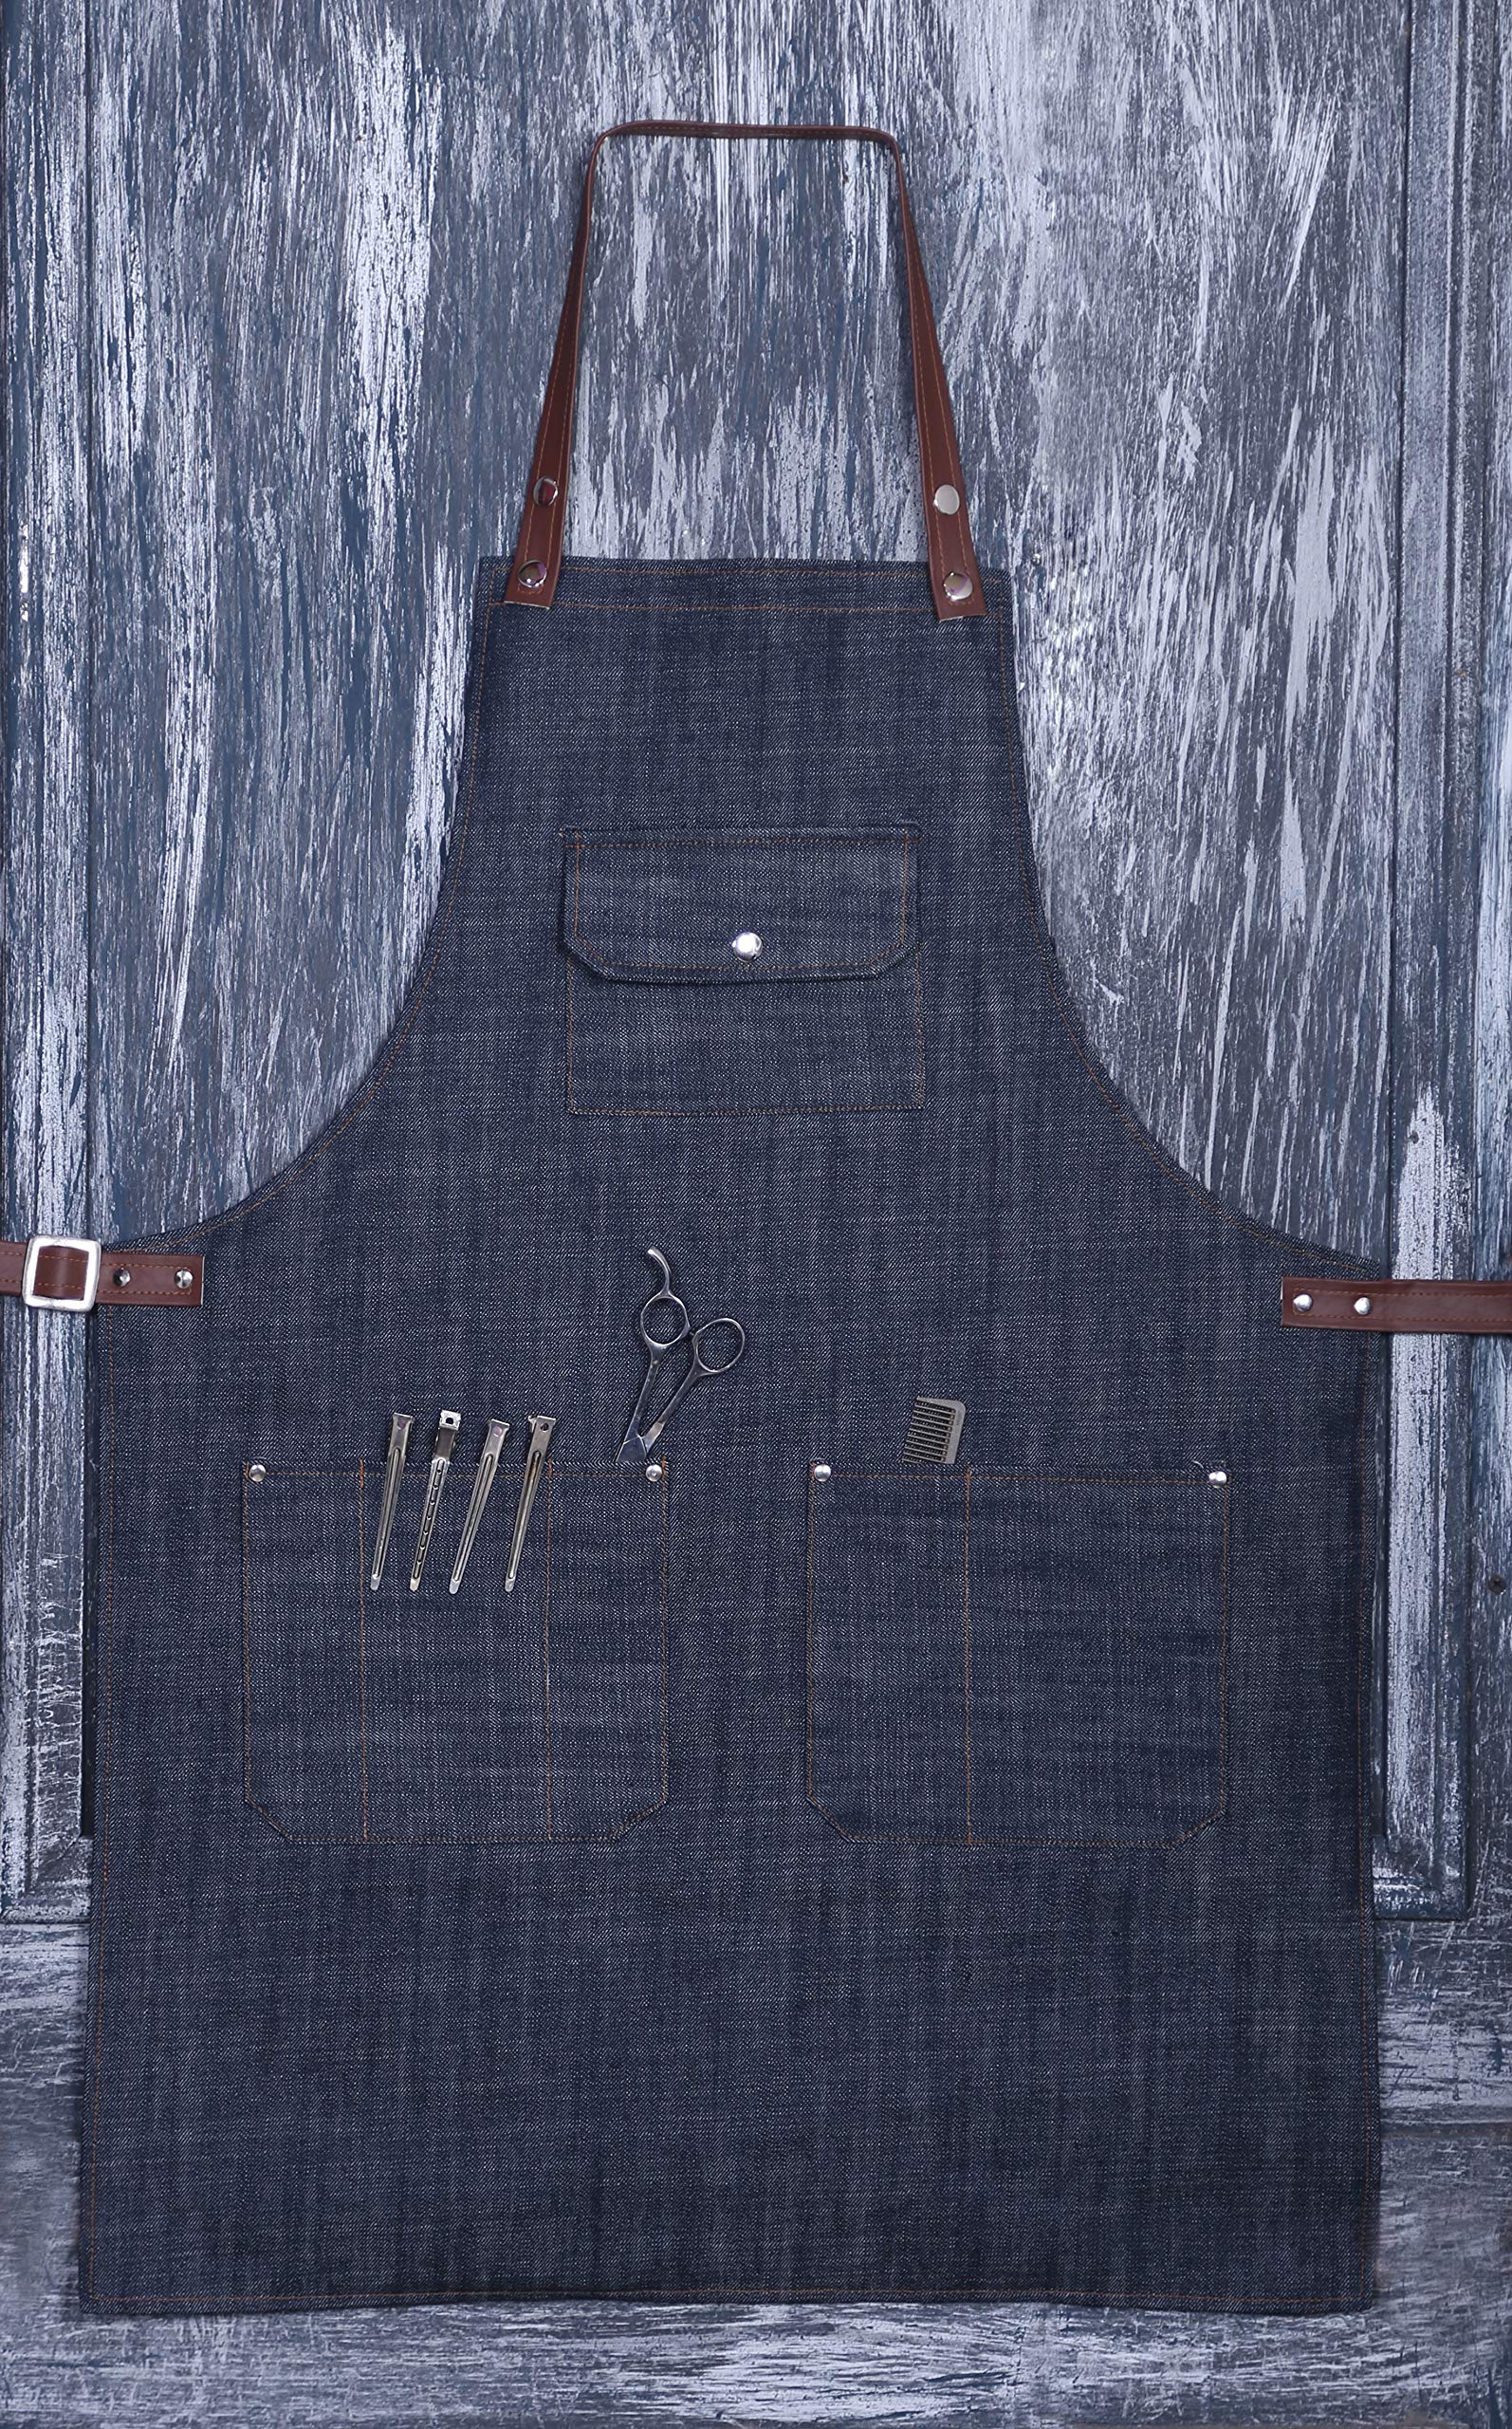 Facón Professional Denim Hair Cutting Hairdressing Barber Apron Cape for Salon Hairstylist - Multi-use, Adjustable with 6 Pockets - Heavy Duty Premium Quality - Limited Edition - 33'' x 24'' (Denim) by FACON